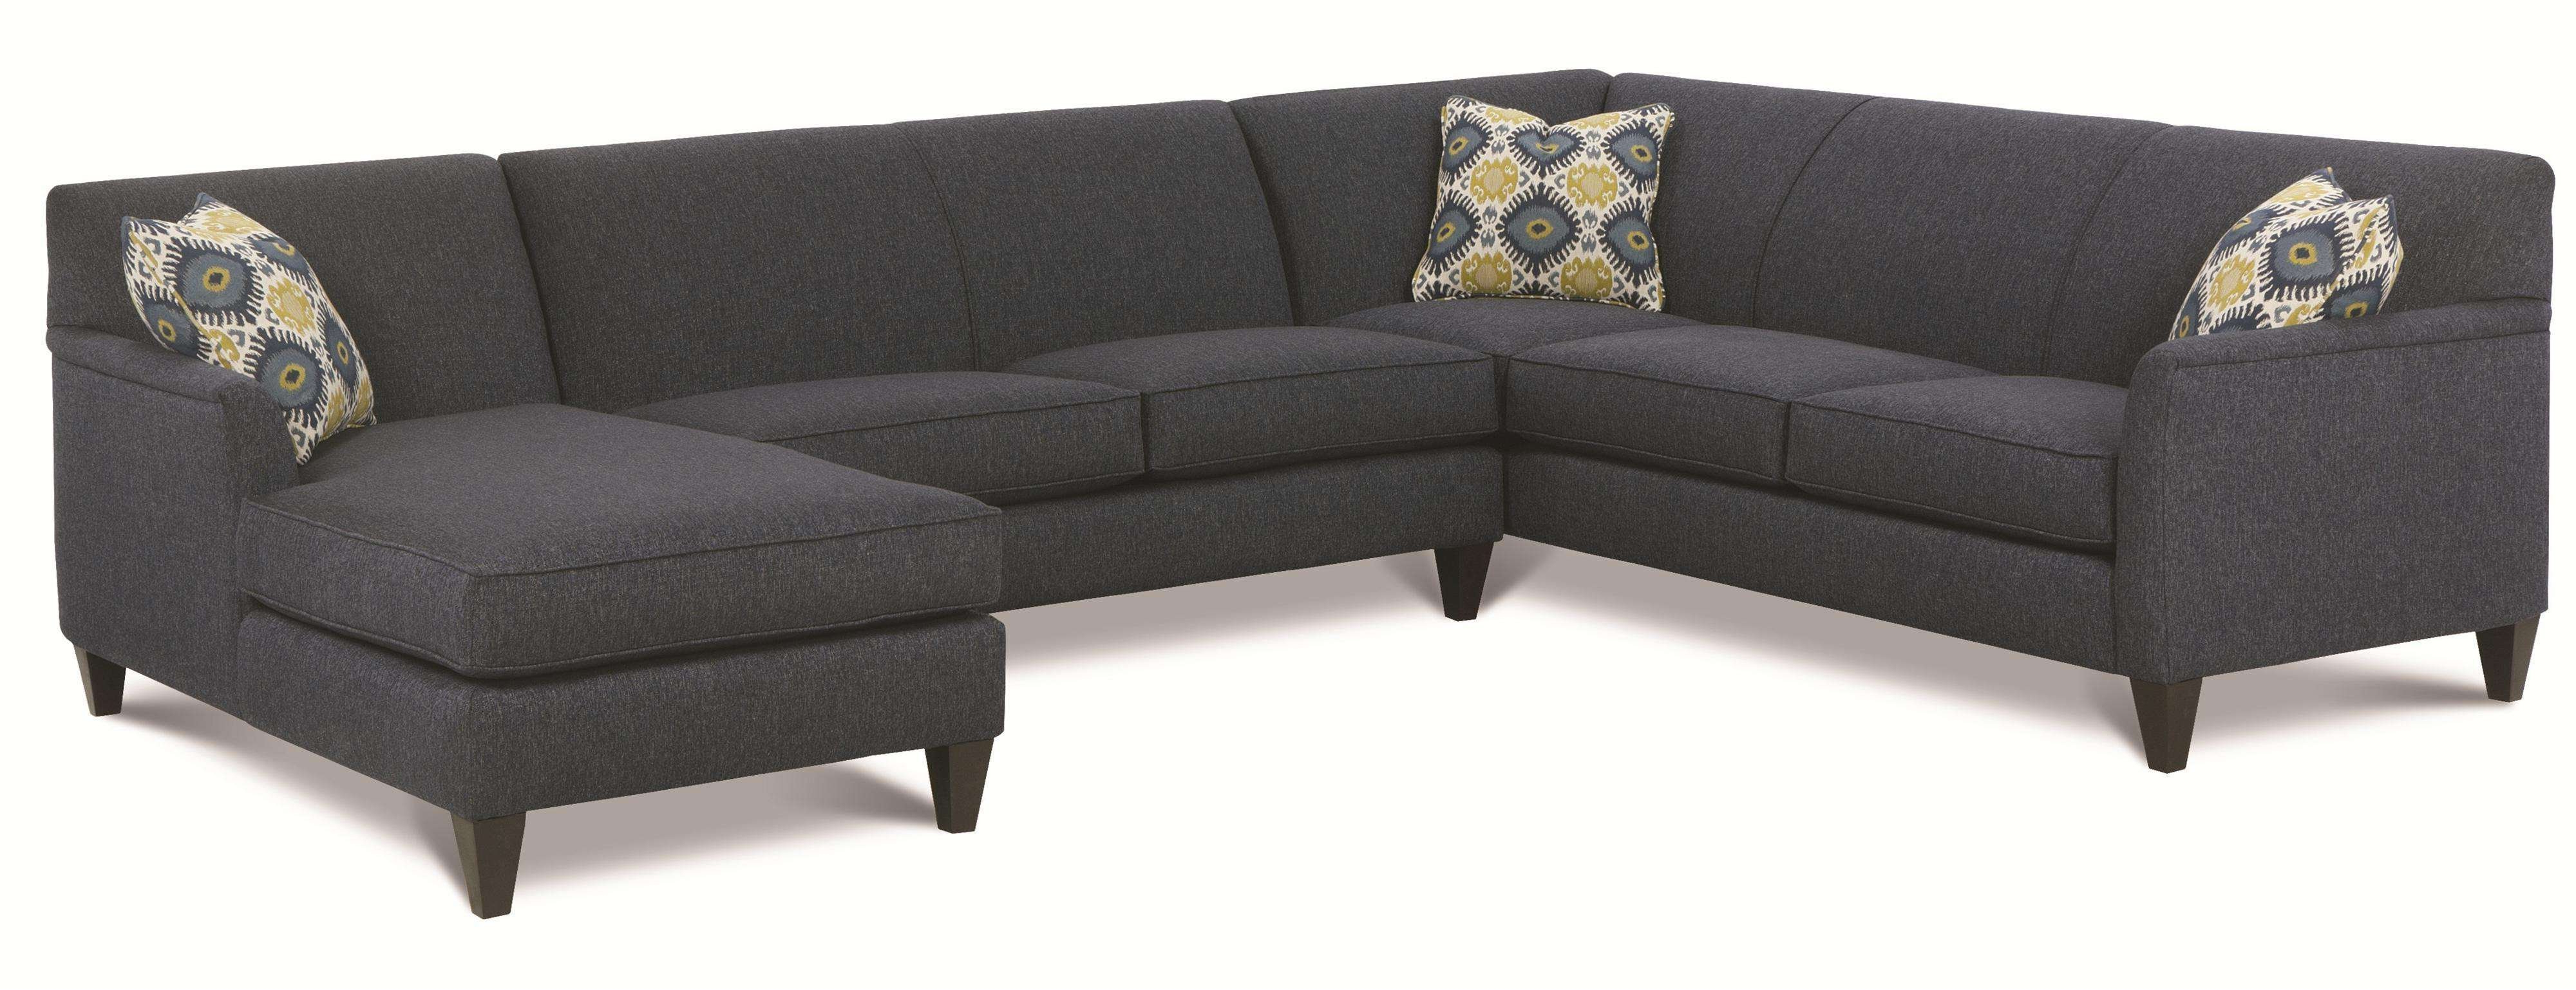 Delano 2 Piece Sectionals With Laf Oversized Chaise Regarding Trendy Simple 25 2 Piece Sectionals With Chaise Awesome (View 20 of 20)